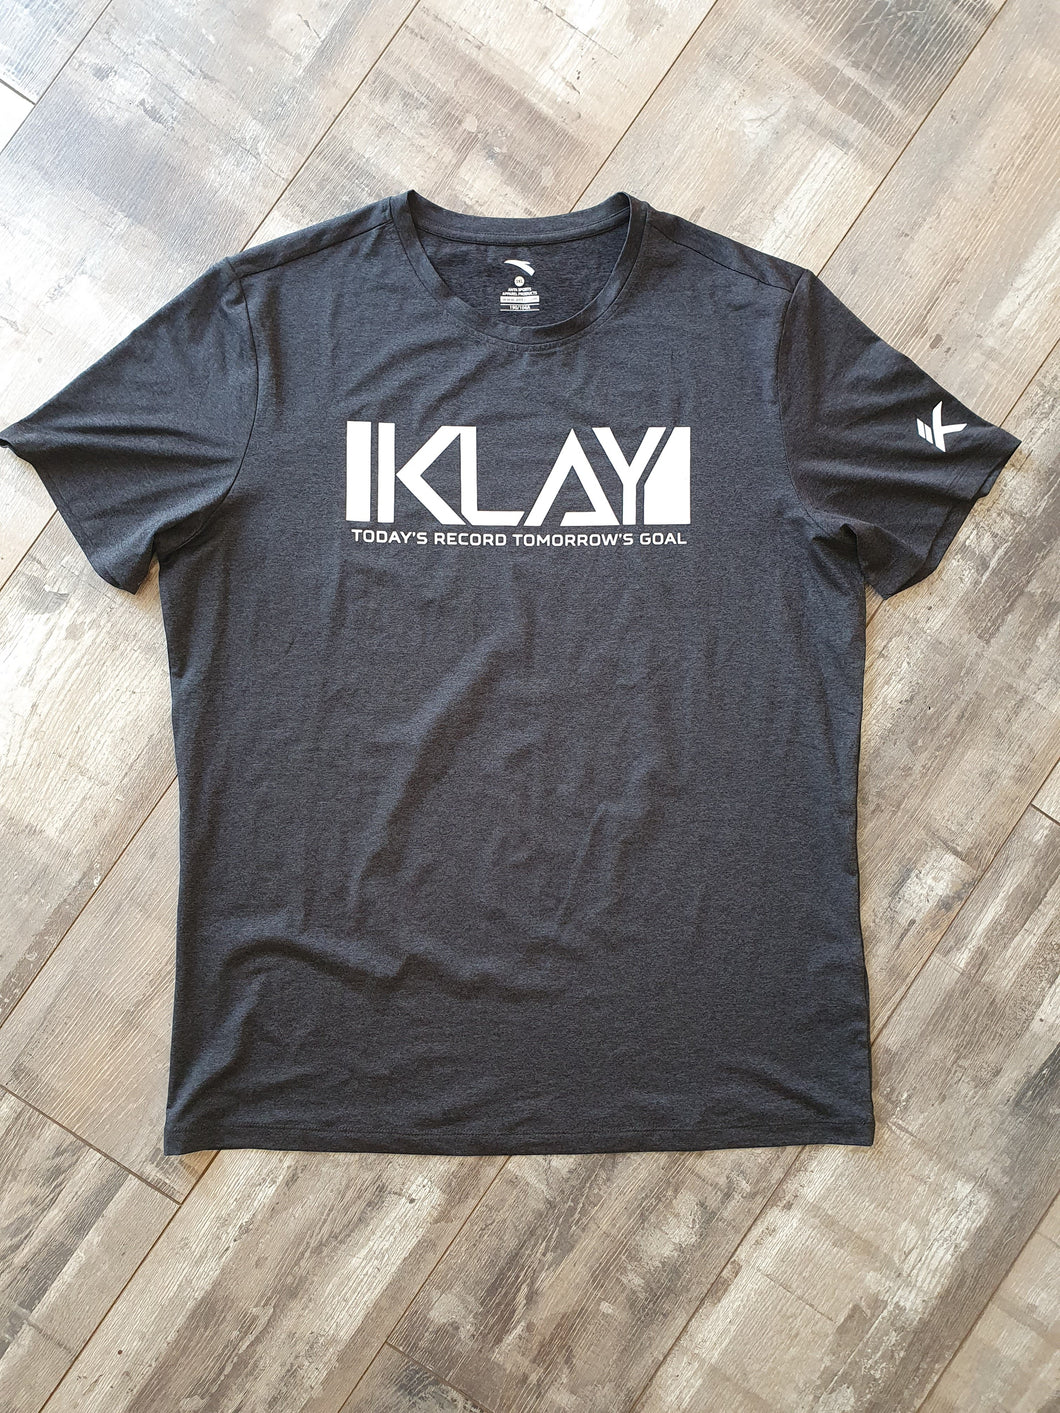 Anta Klay Thompson T-Shirt Size 3XL fits like a Size Large